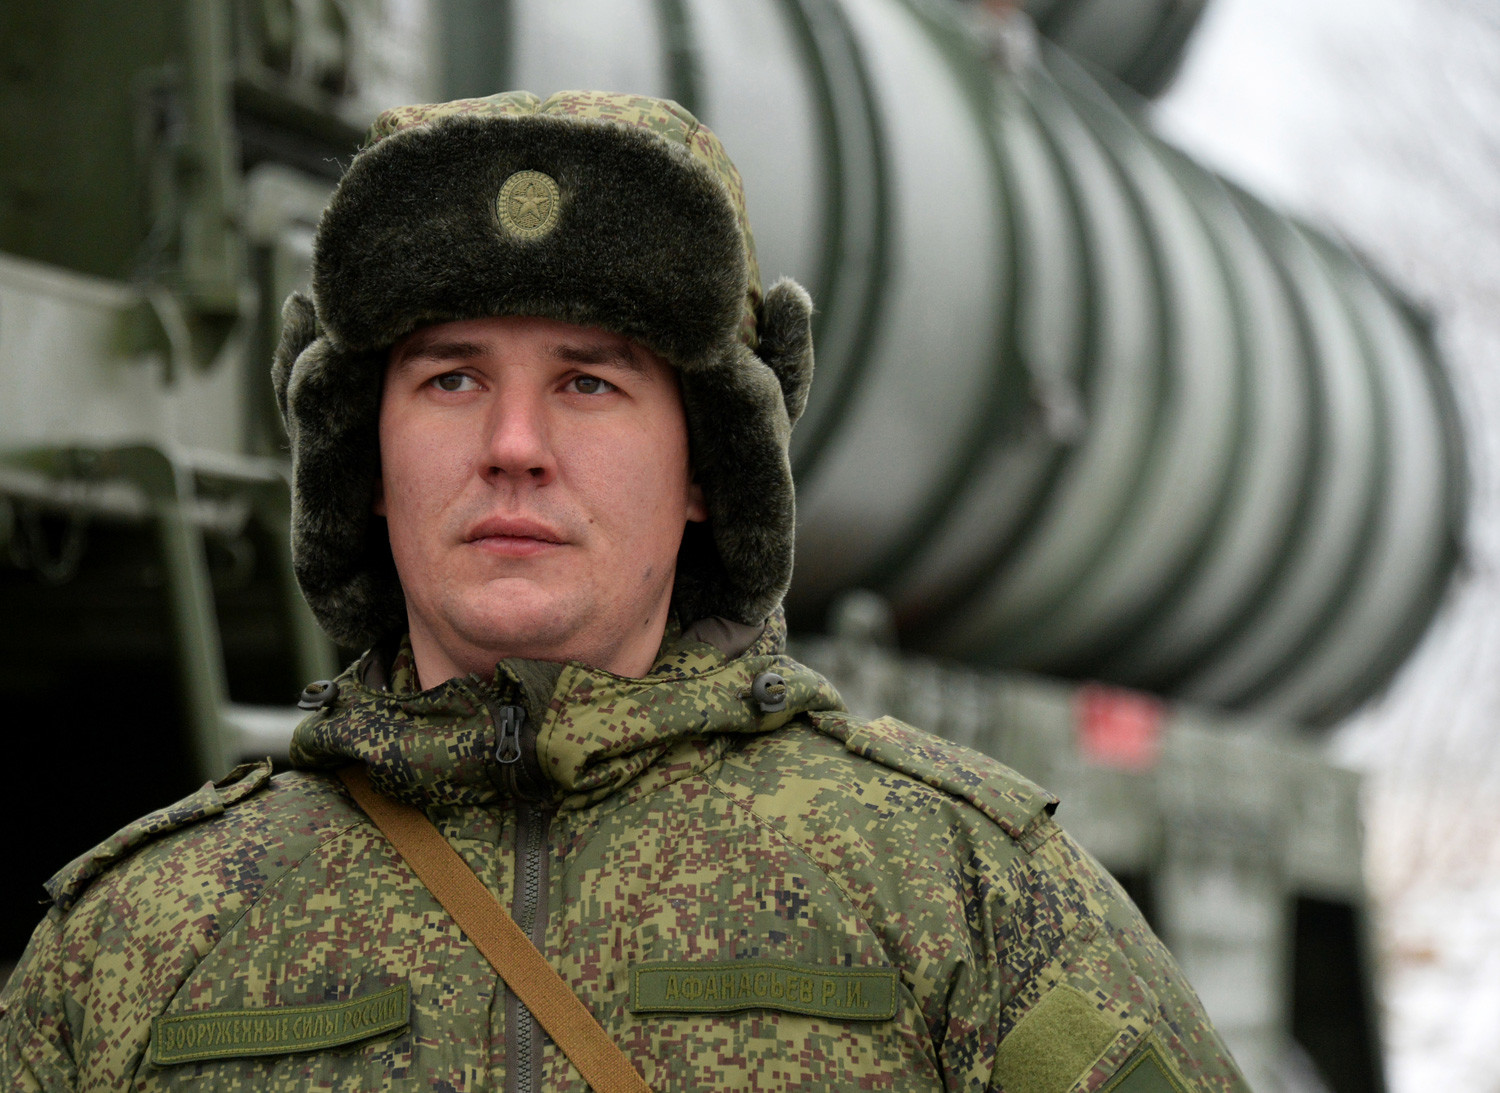 A serviceman of the Eastern Military District's Air Defense Missile System battalion on a combat duty. S-400 Triumph air defense missile systems were deployed in combat positions after a solemn ceremony of taking up a duty and started protecting air space of the Primorye Territory.